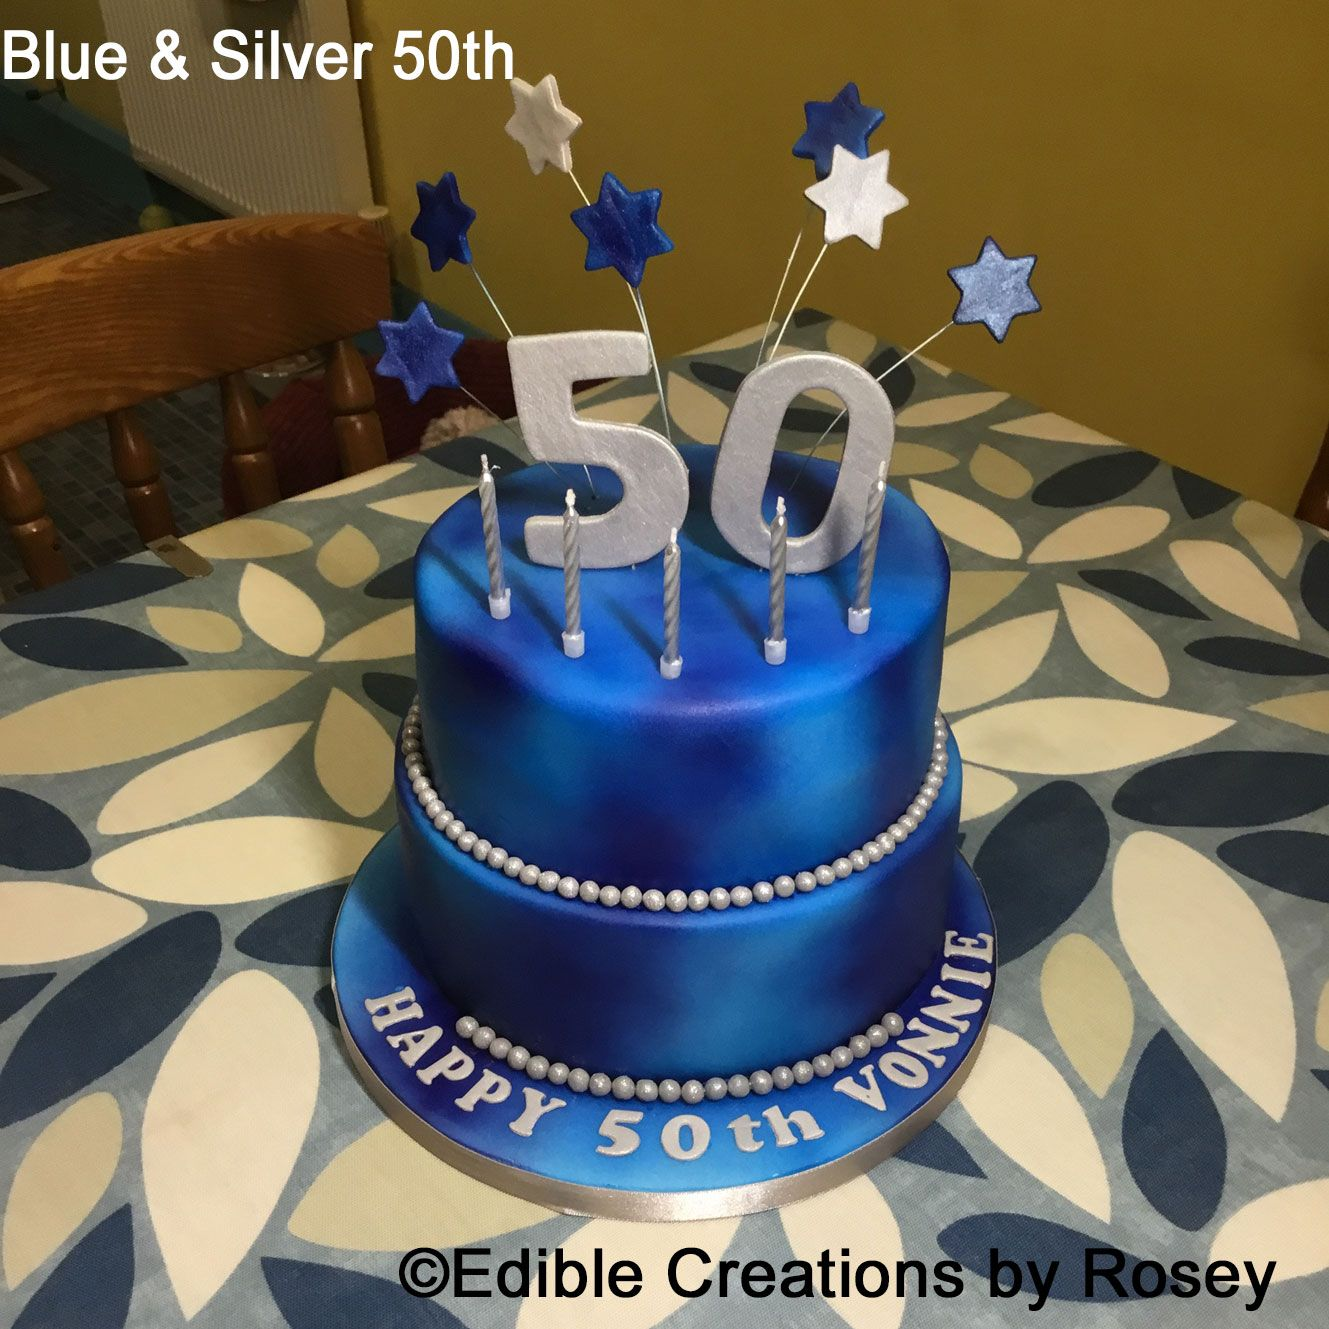 Blue silver 50th birthday cake by Edible Creations by Rosey